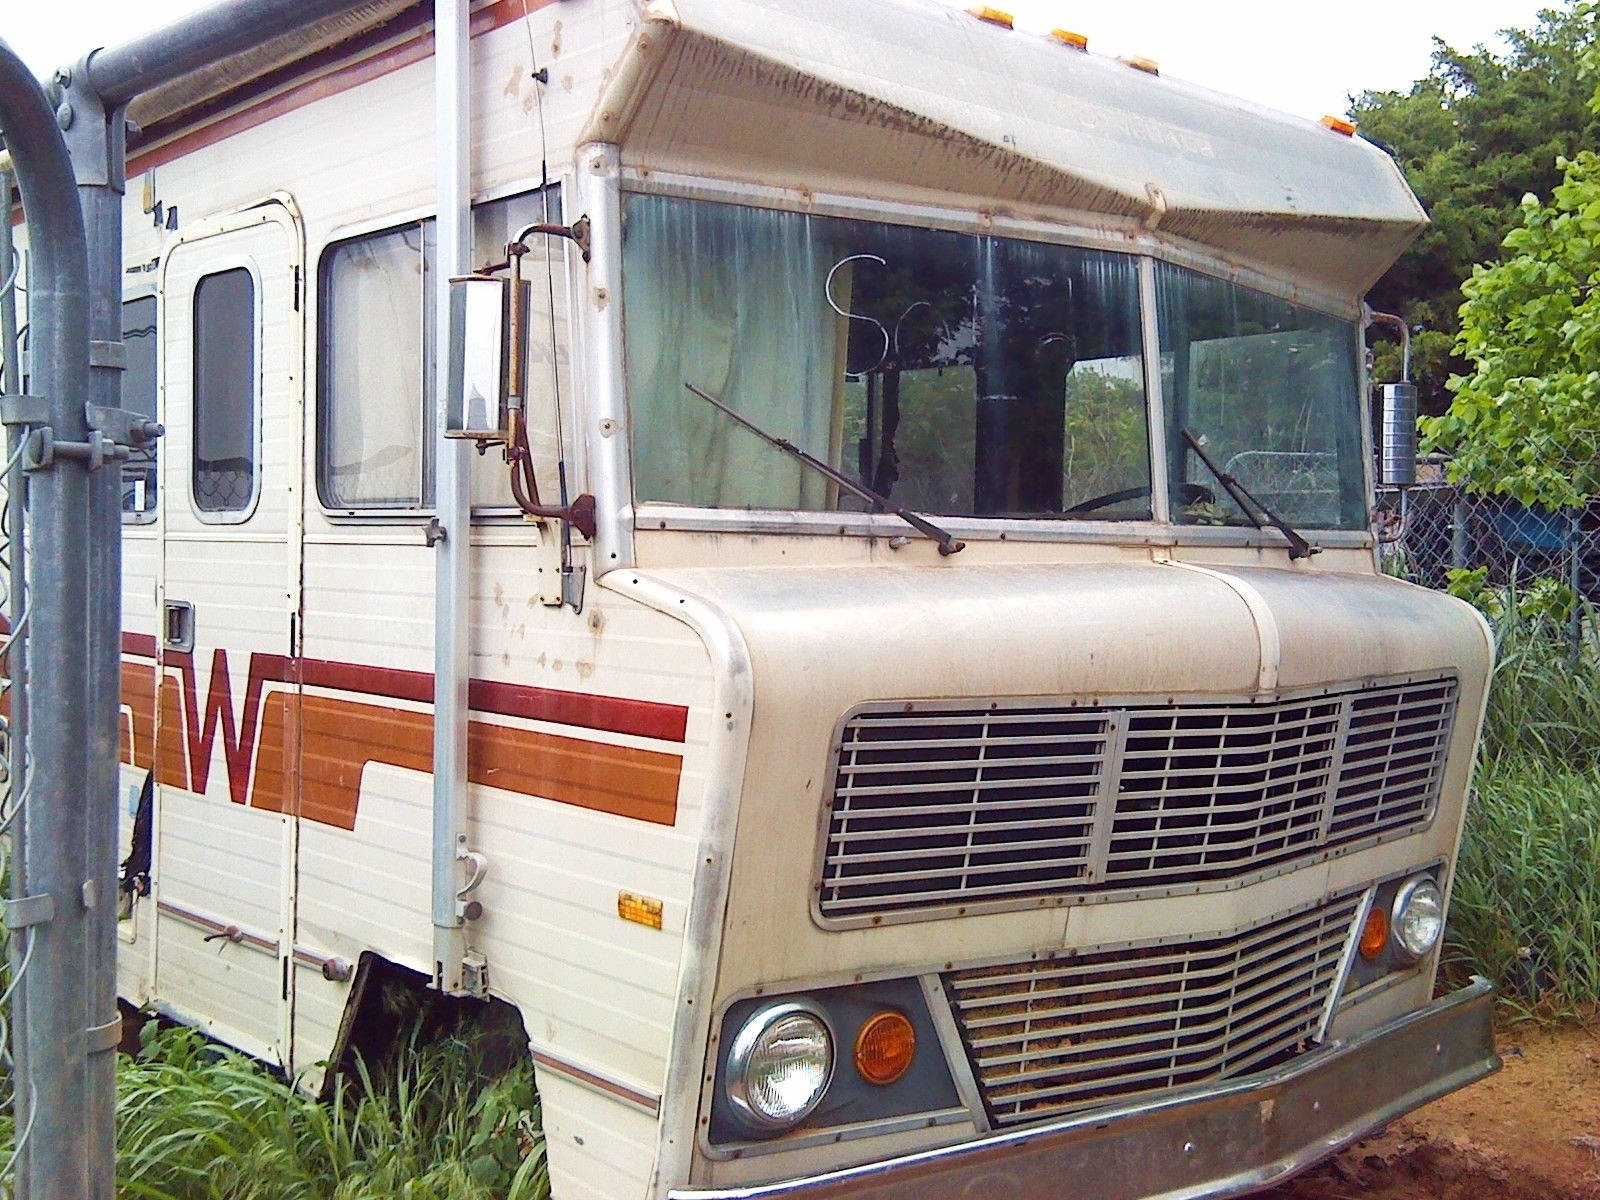 1978 Dodge Winnebago Brave Won U0026 39 T Start There Are 6 3volts Manual Guide